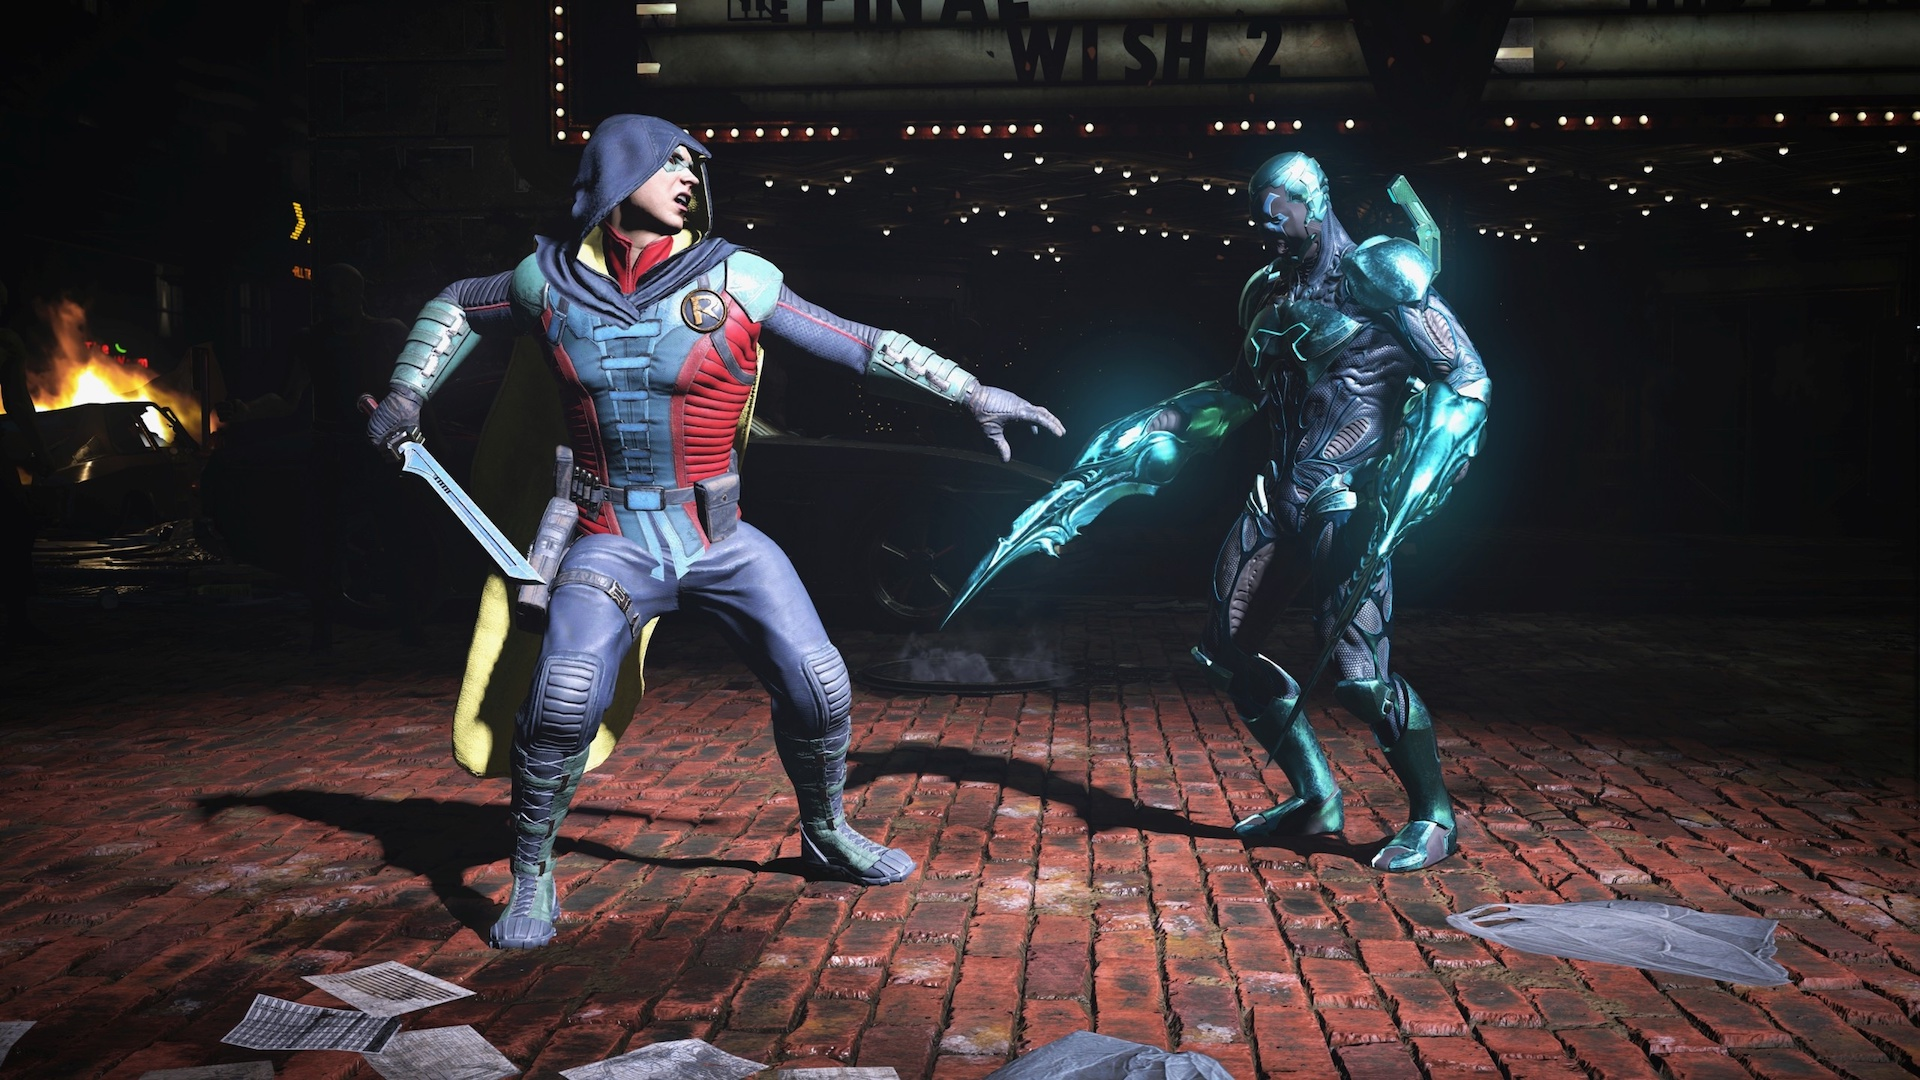 Tips For Winning at Injustice 2